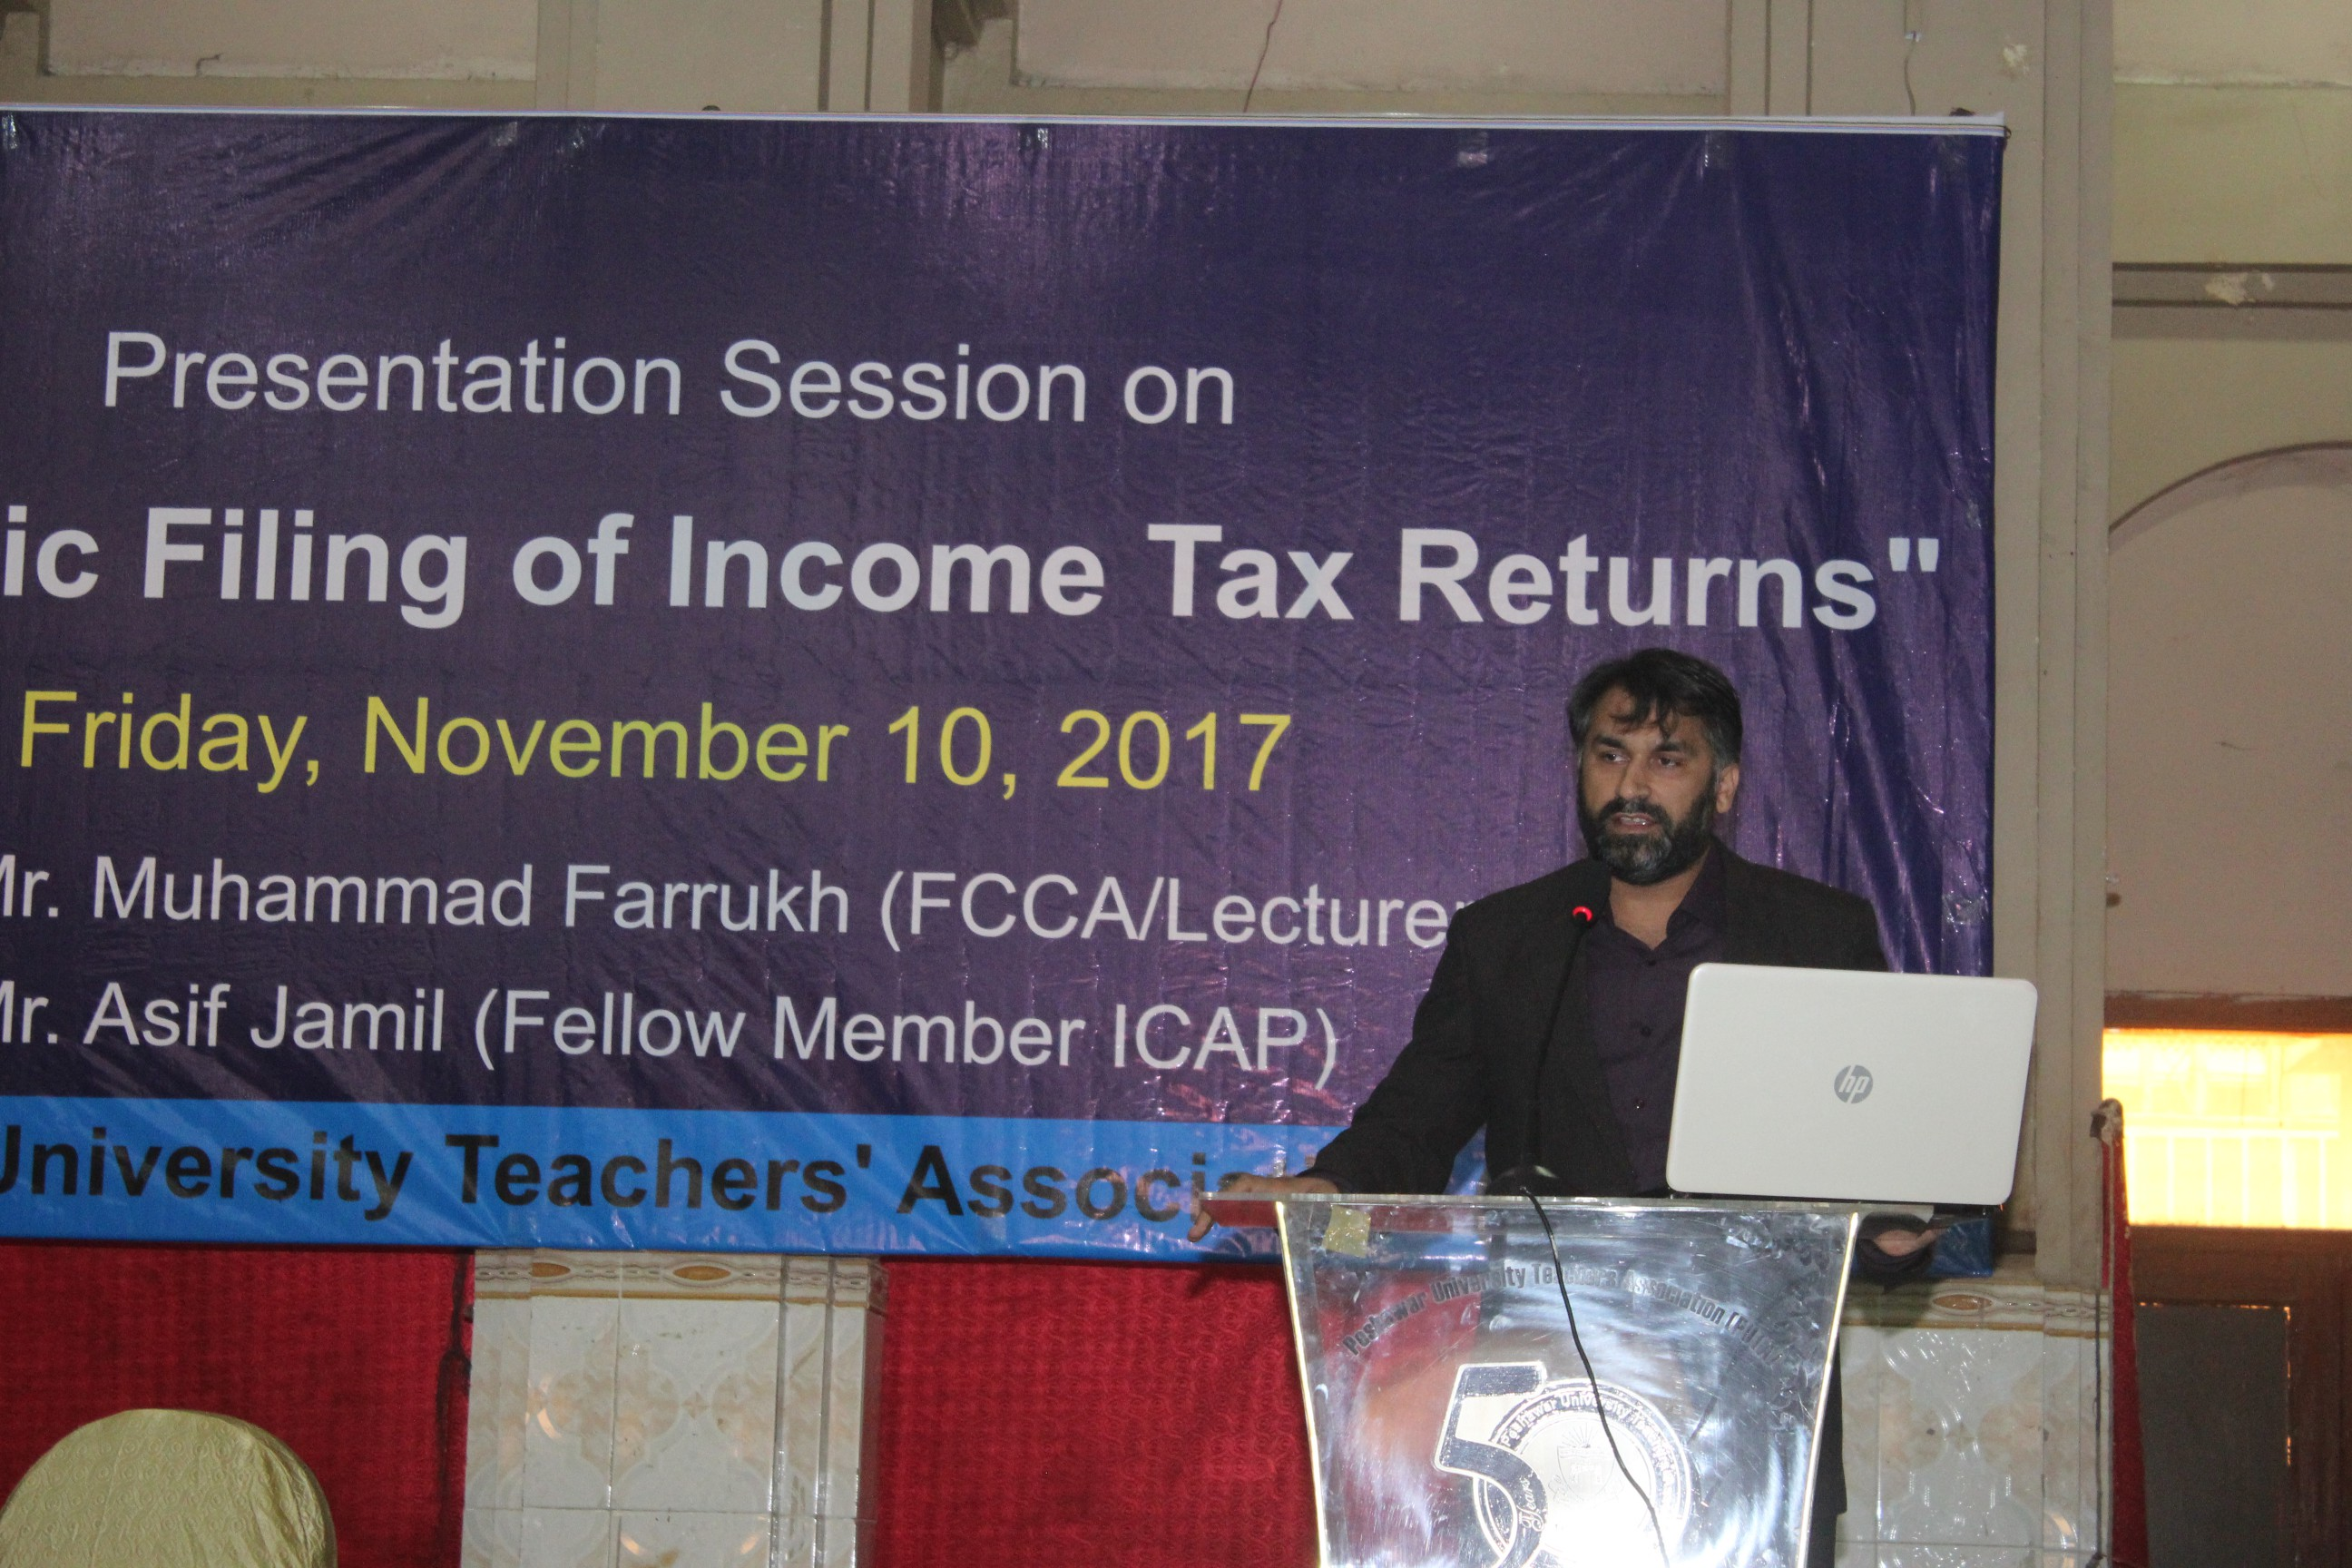 Mr. Asif Jamil, Fellow Member, ICAP addressing  participants on Income Tax Returns